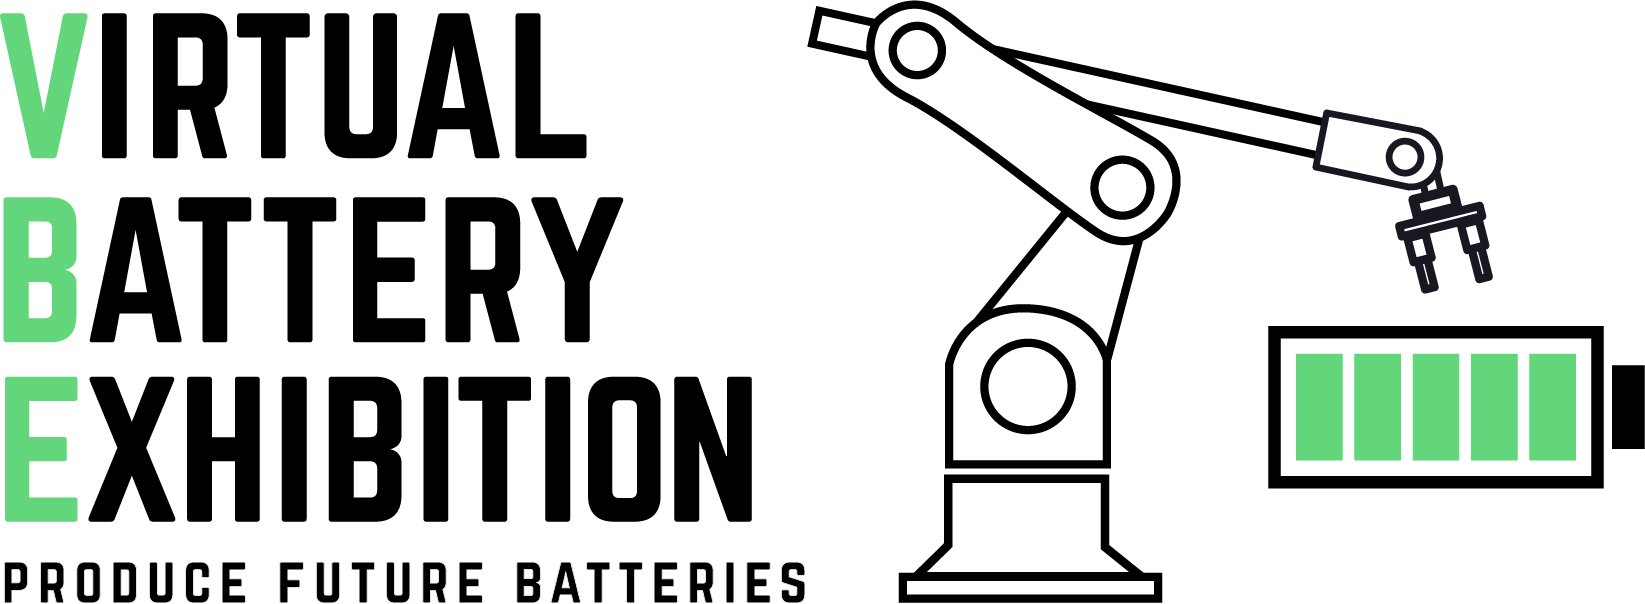 Virtual Battery Exhibition